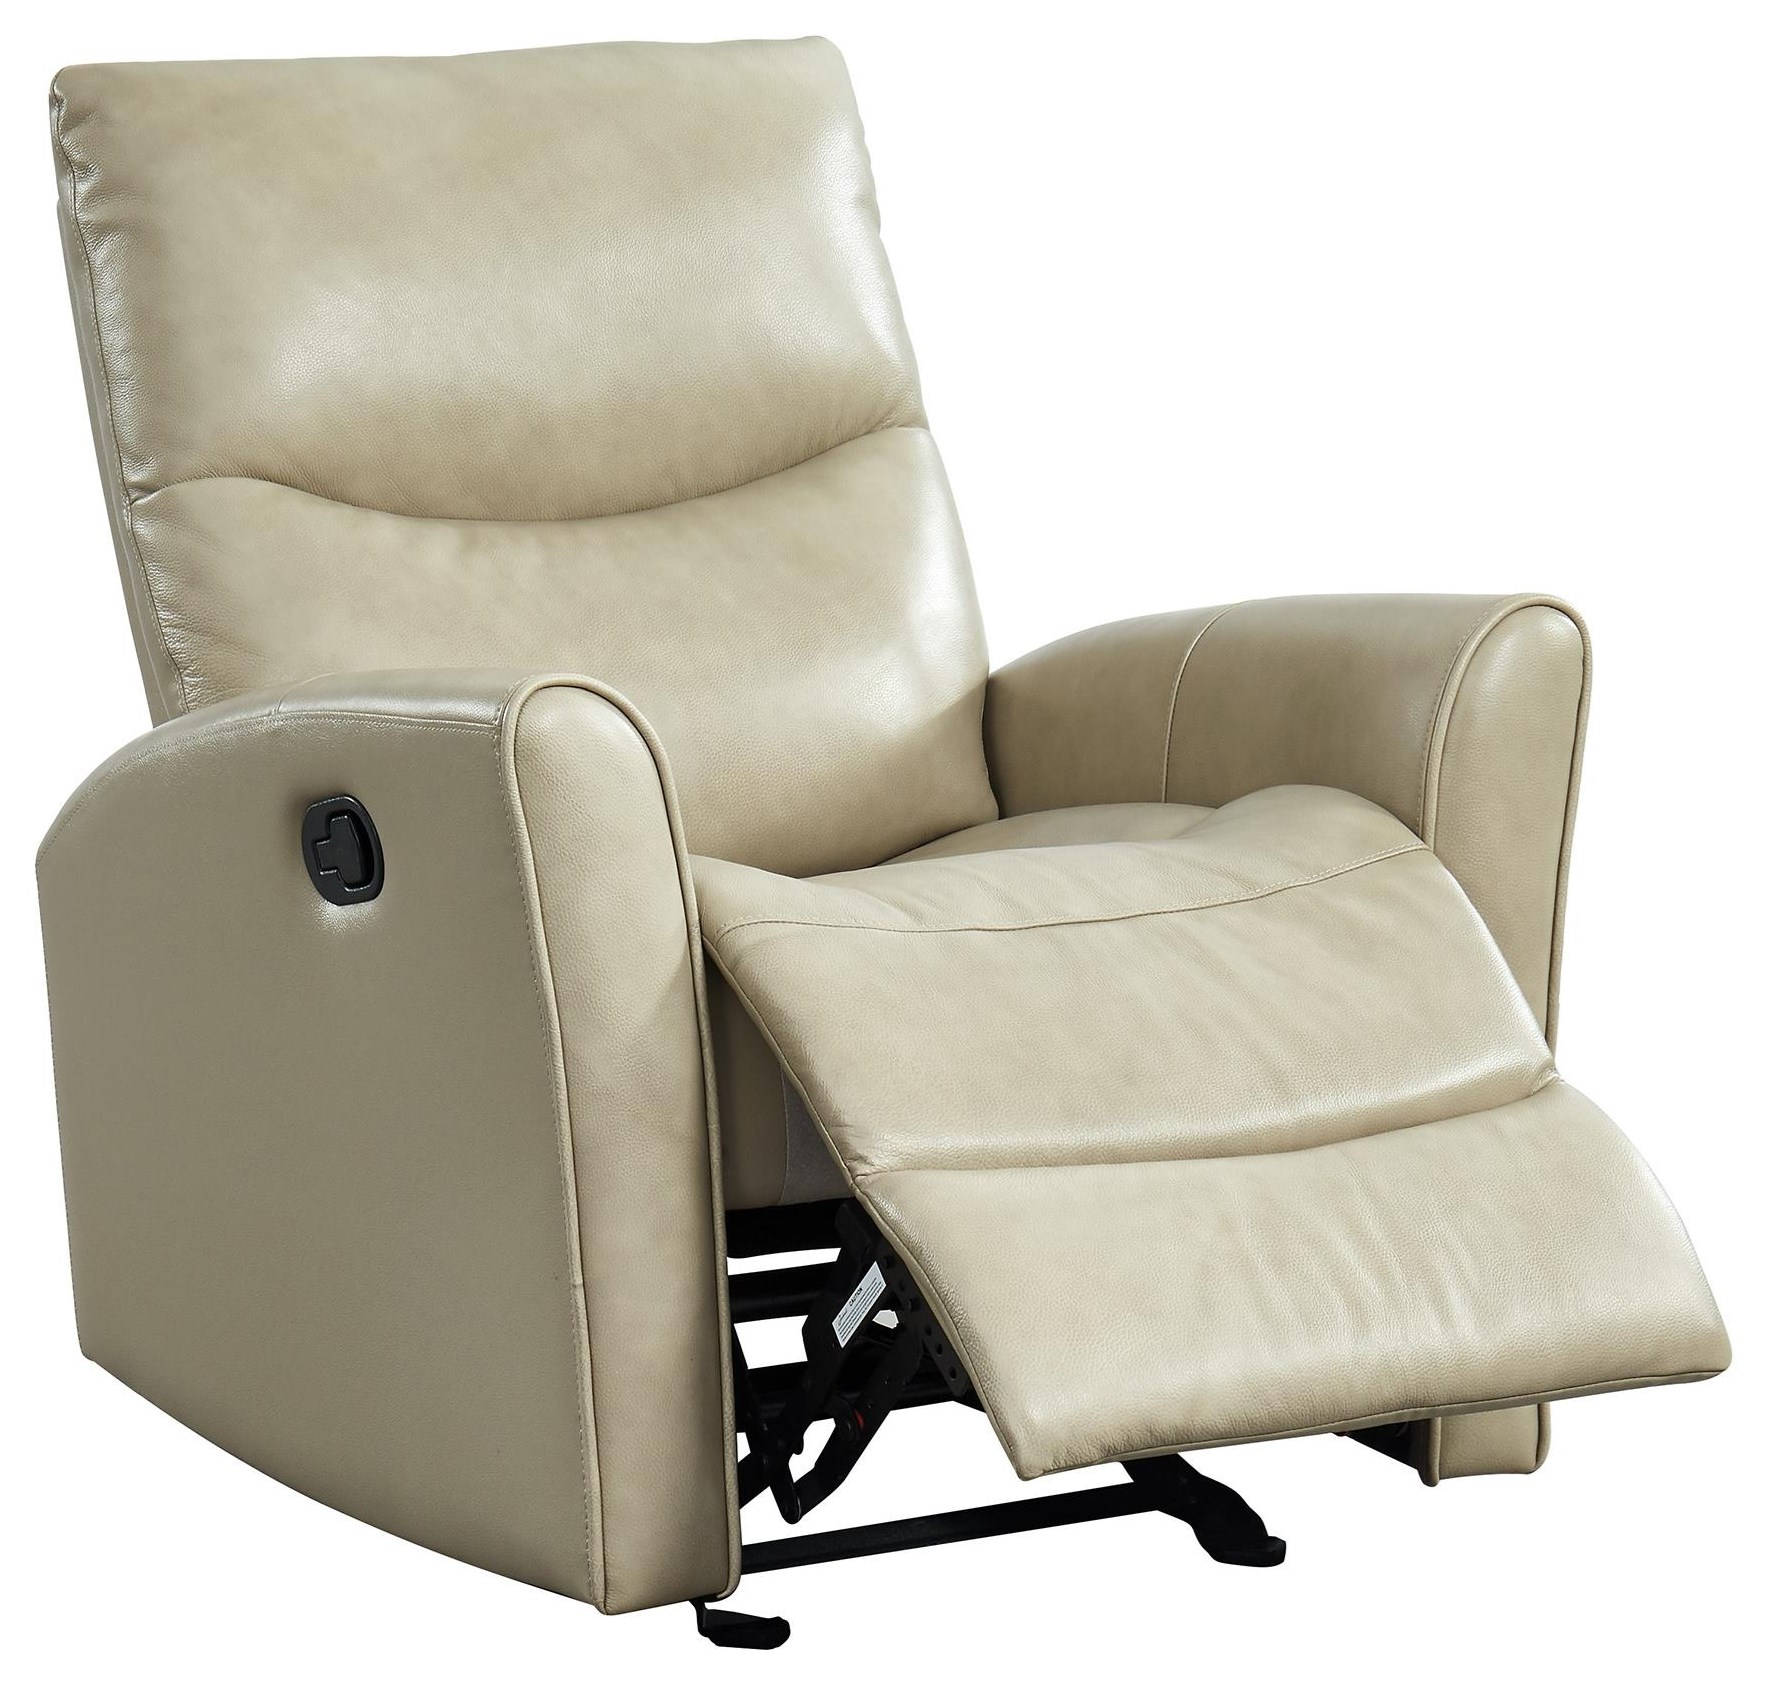 Abby Manual Glider Recliner at Rotmans